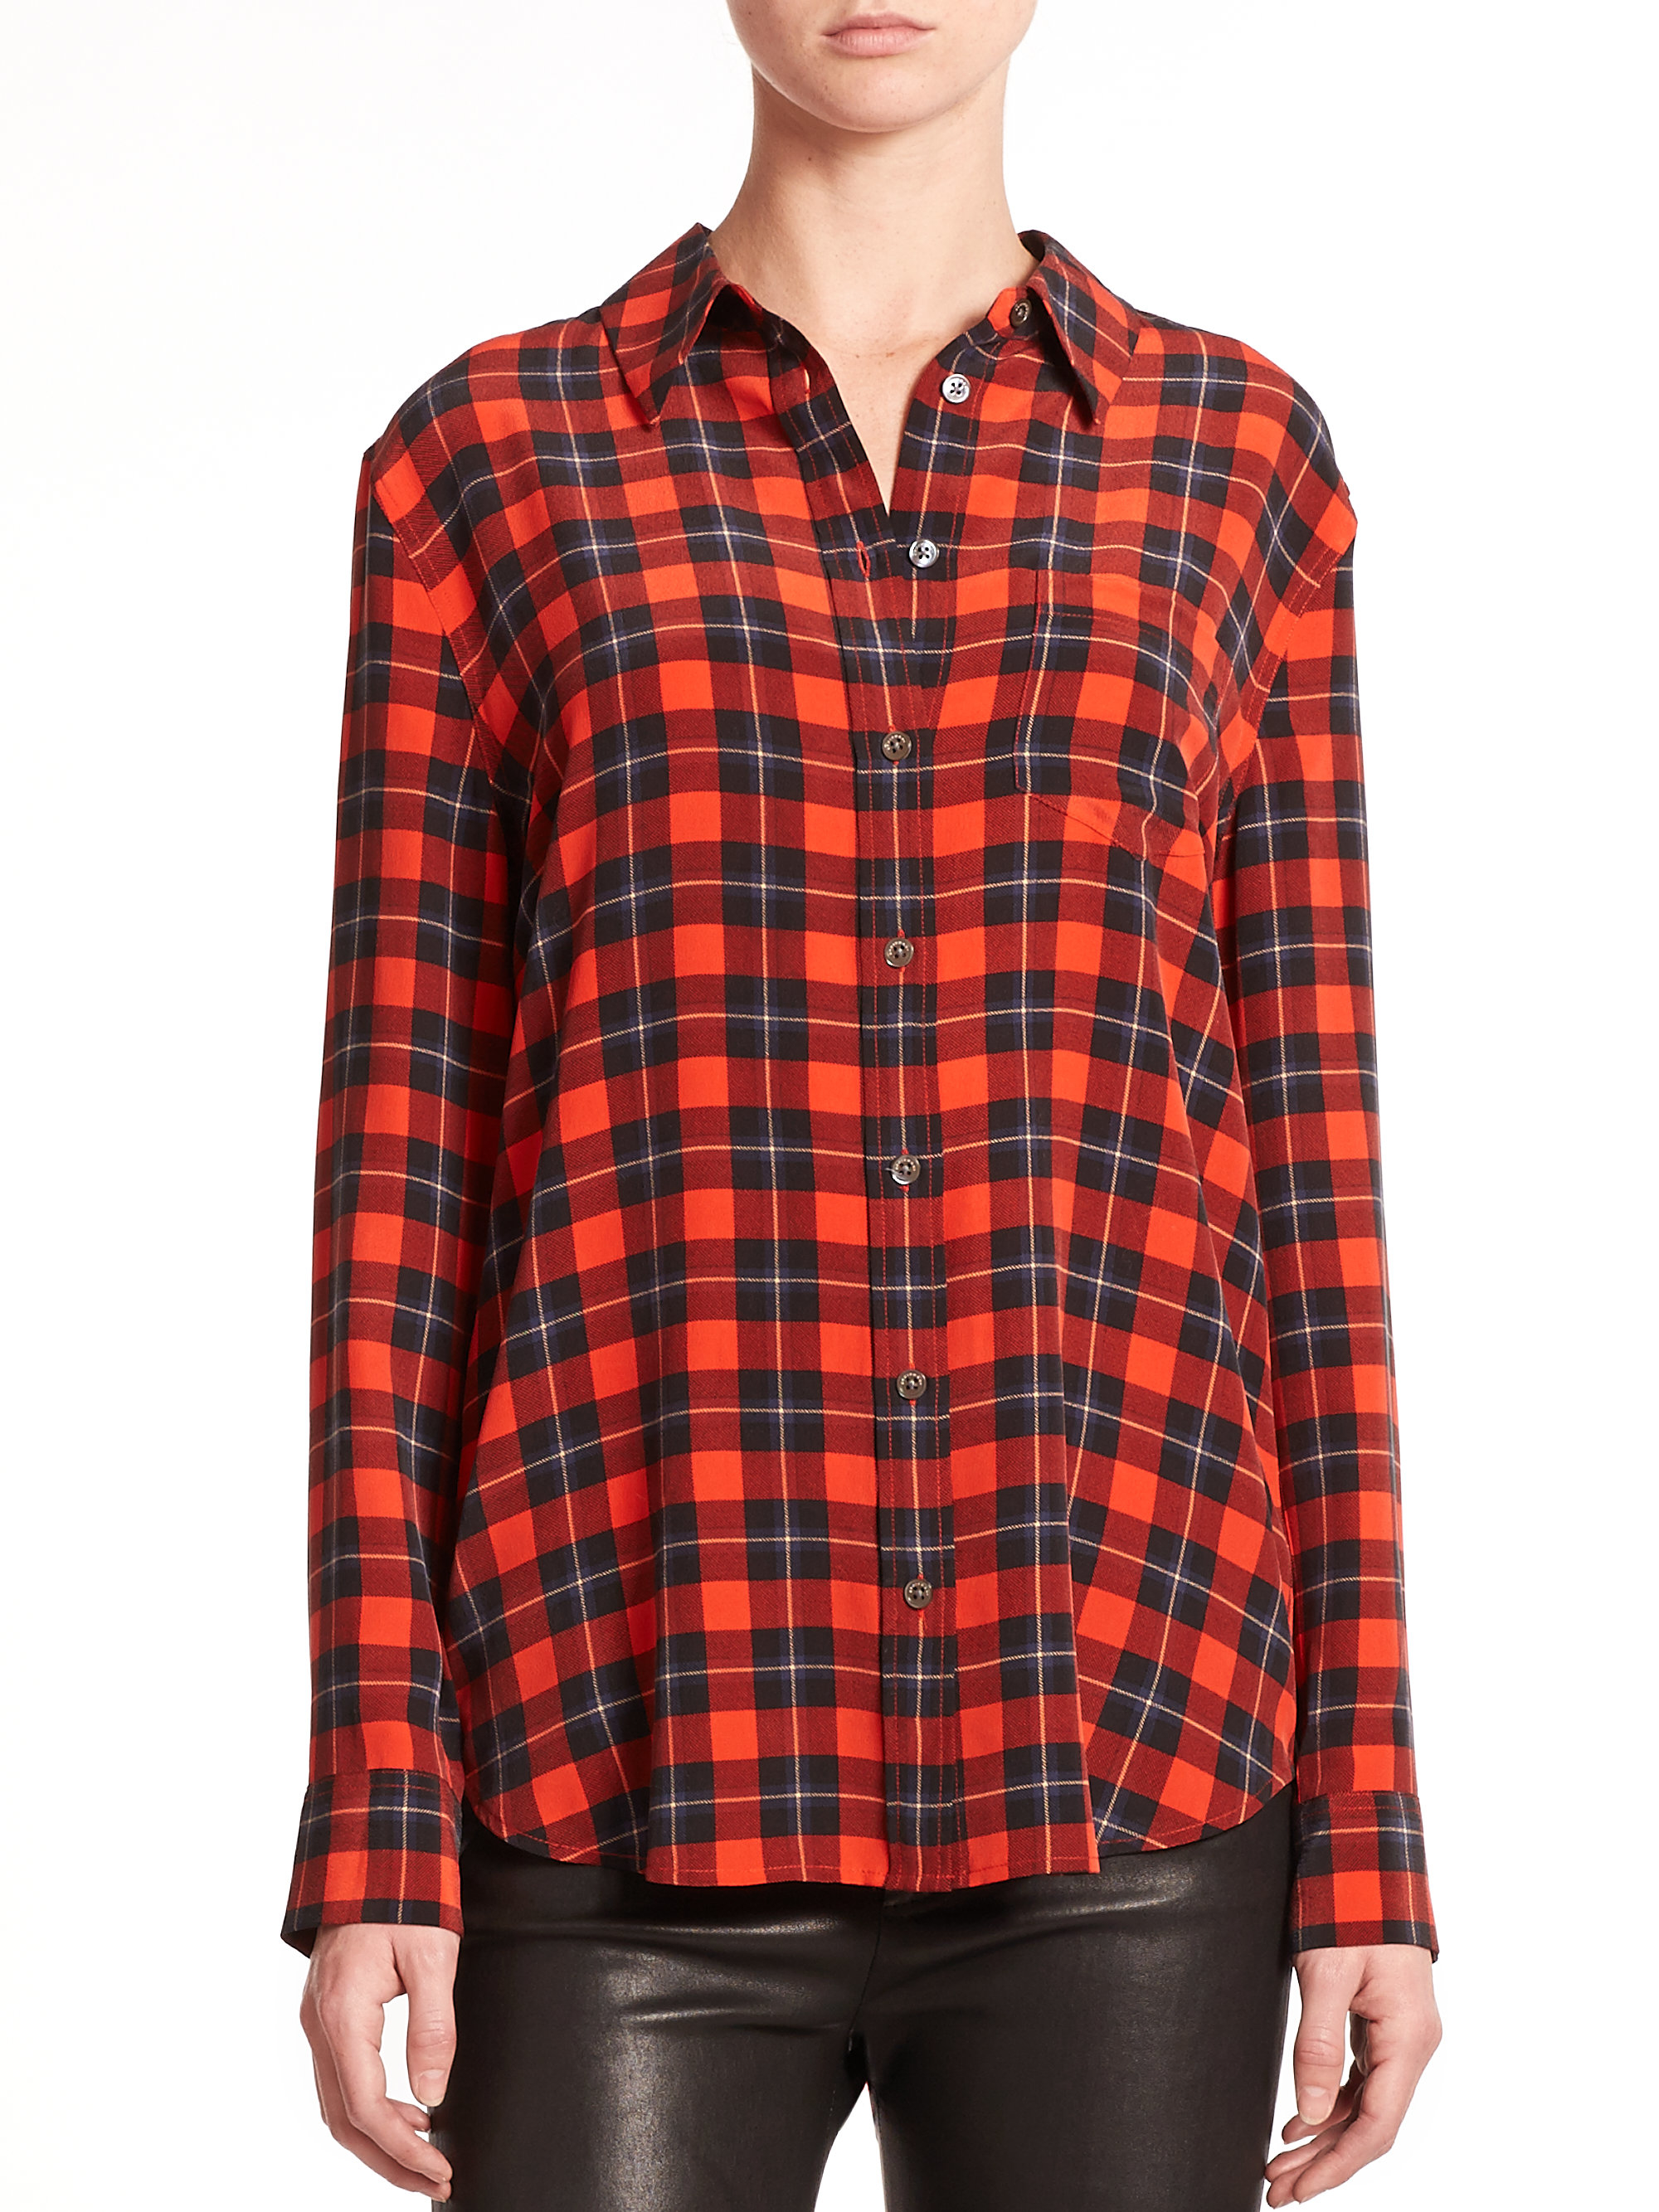 Lyst equipment plaid print shirt in red Womens red tartan plaid shirt